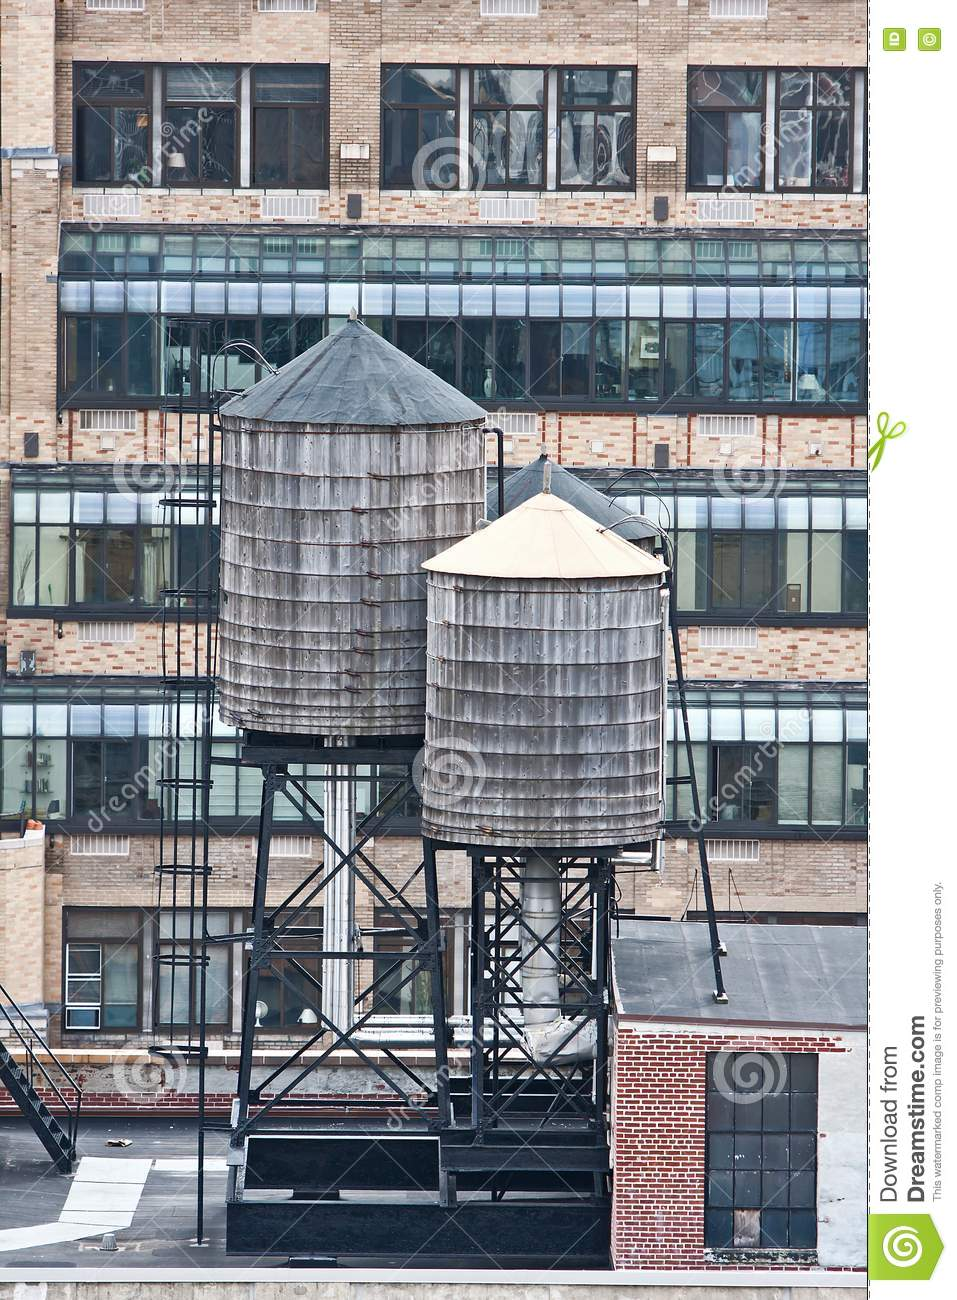 Rooftop Water Towers On Nyc Buildings Stock Photo Image